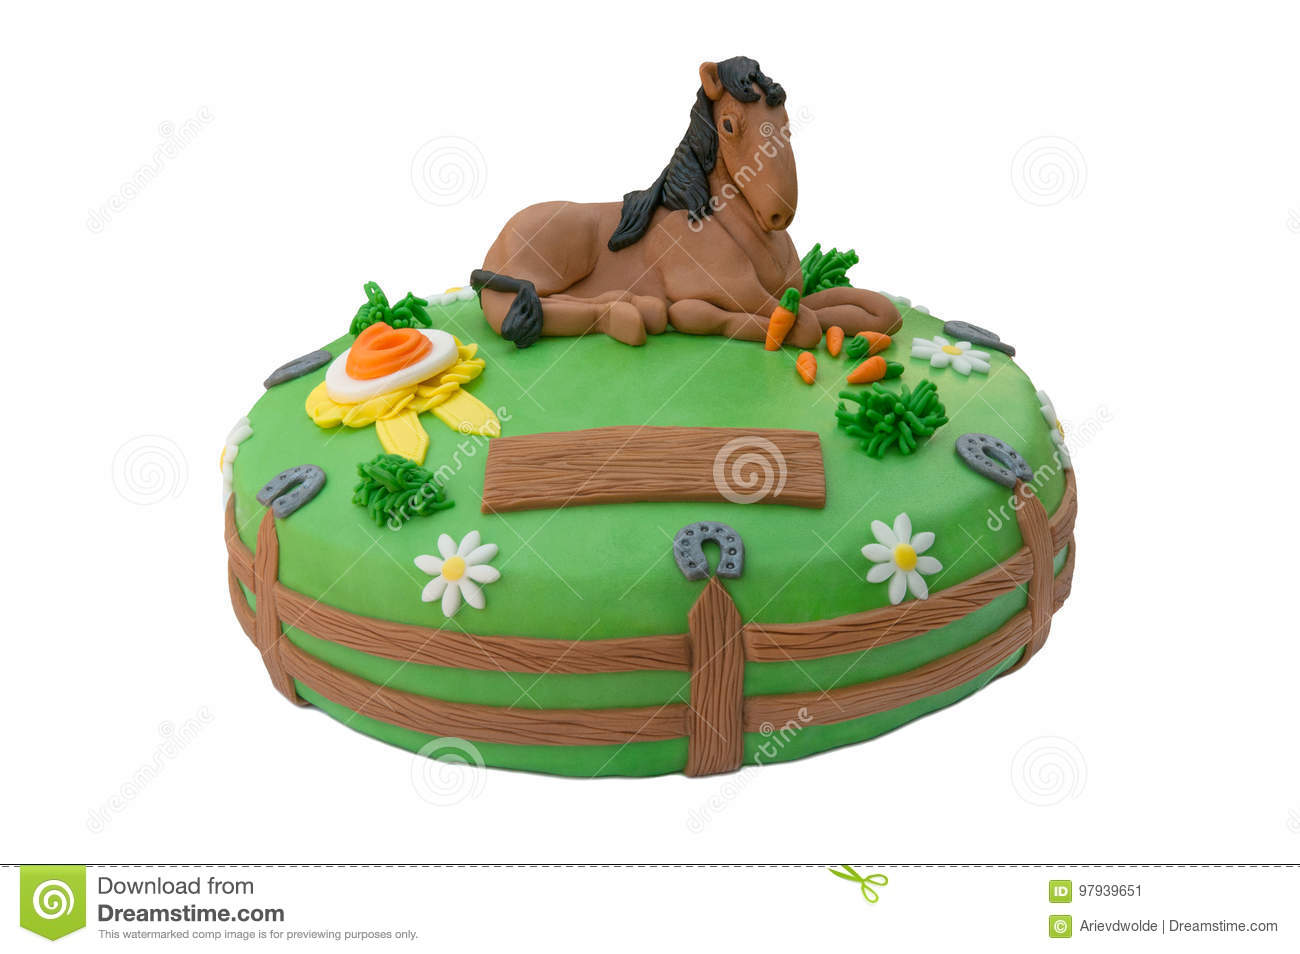 Remarkable Green Horse Birthday Cake Stock Image Image Of Colorful 97939651 Funny Birthday Cards Online Inifodamsfinfo